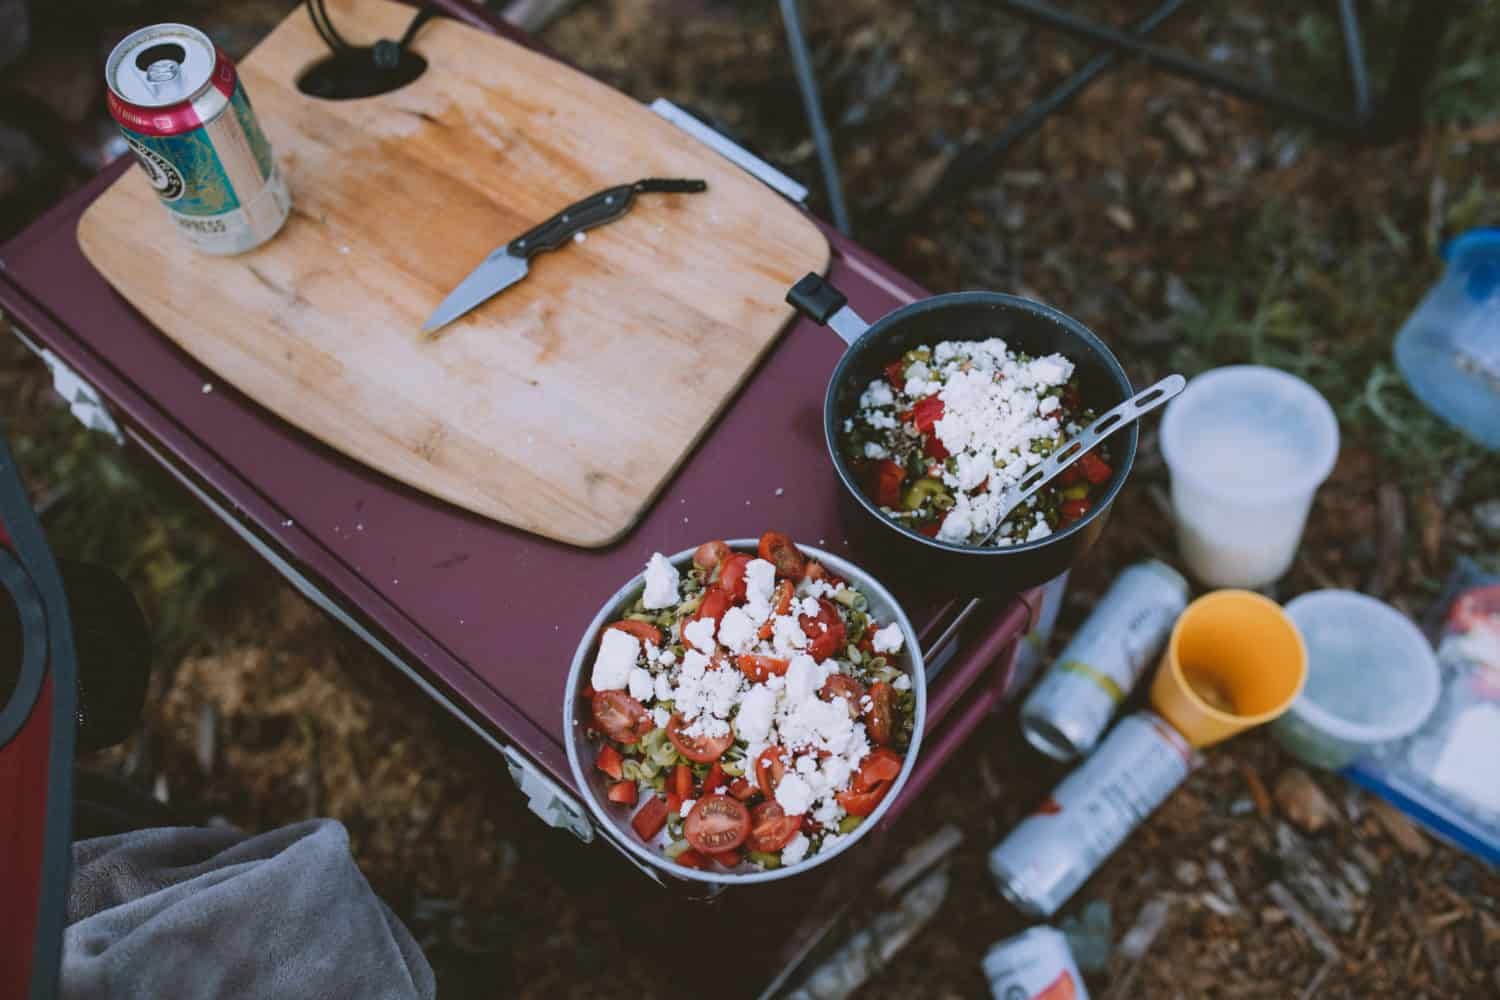 Cheap and healthy camping meals